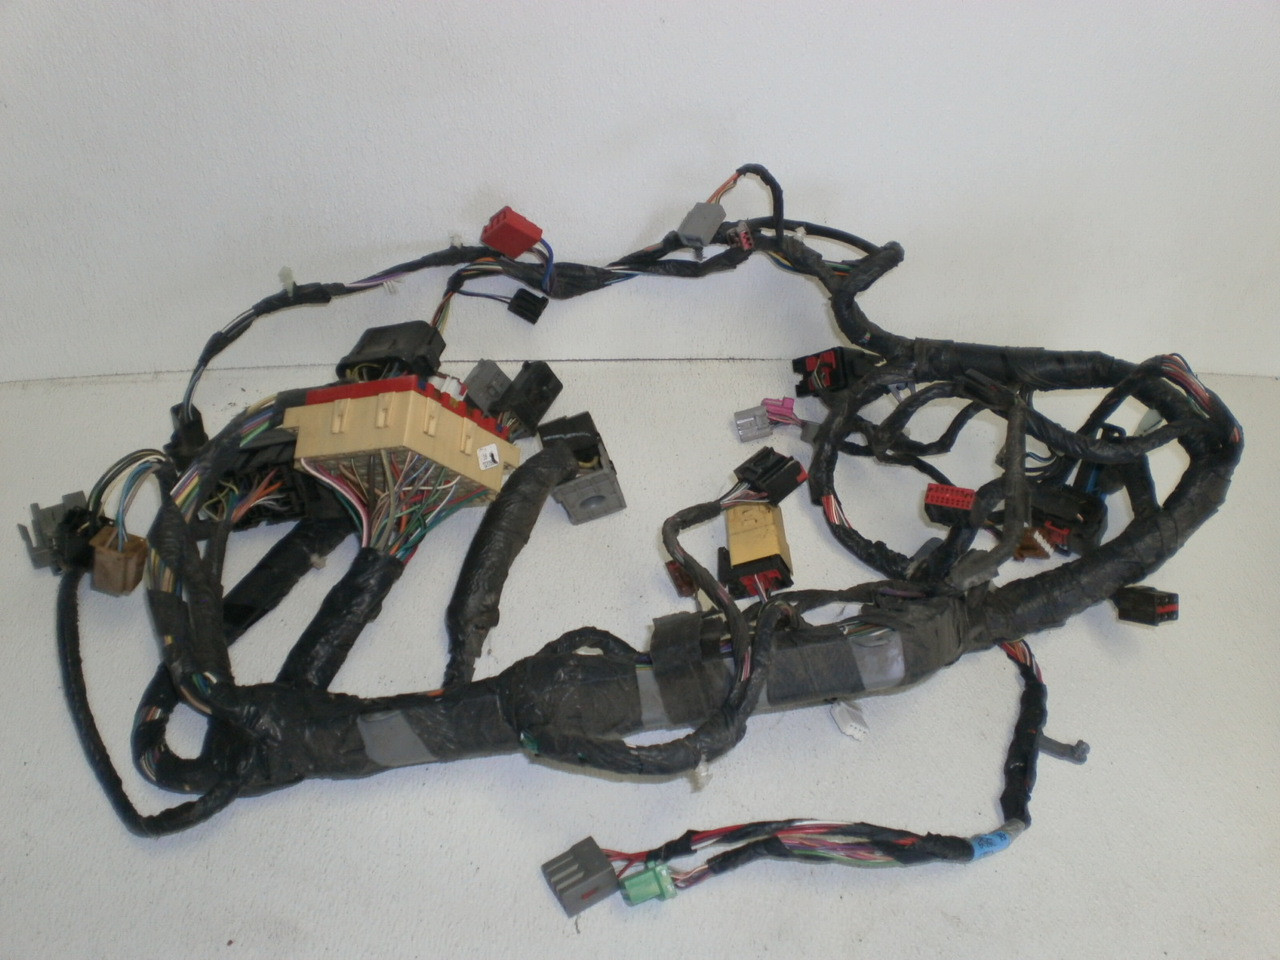 2003 2004 Ford Mustang Interior Dash Wire Harness 3r33 14401 Bb Wiring Larger More Photos